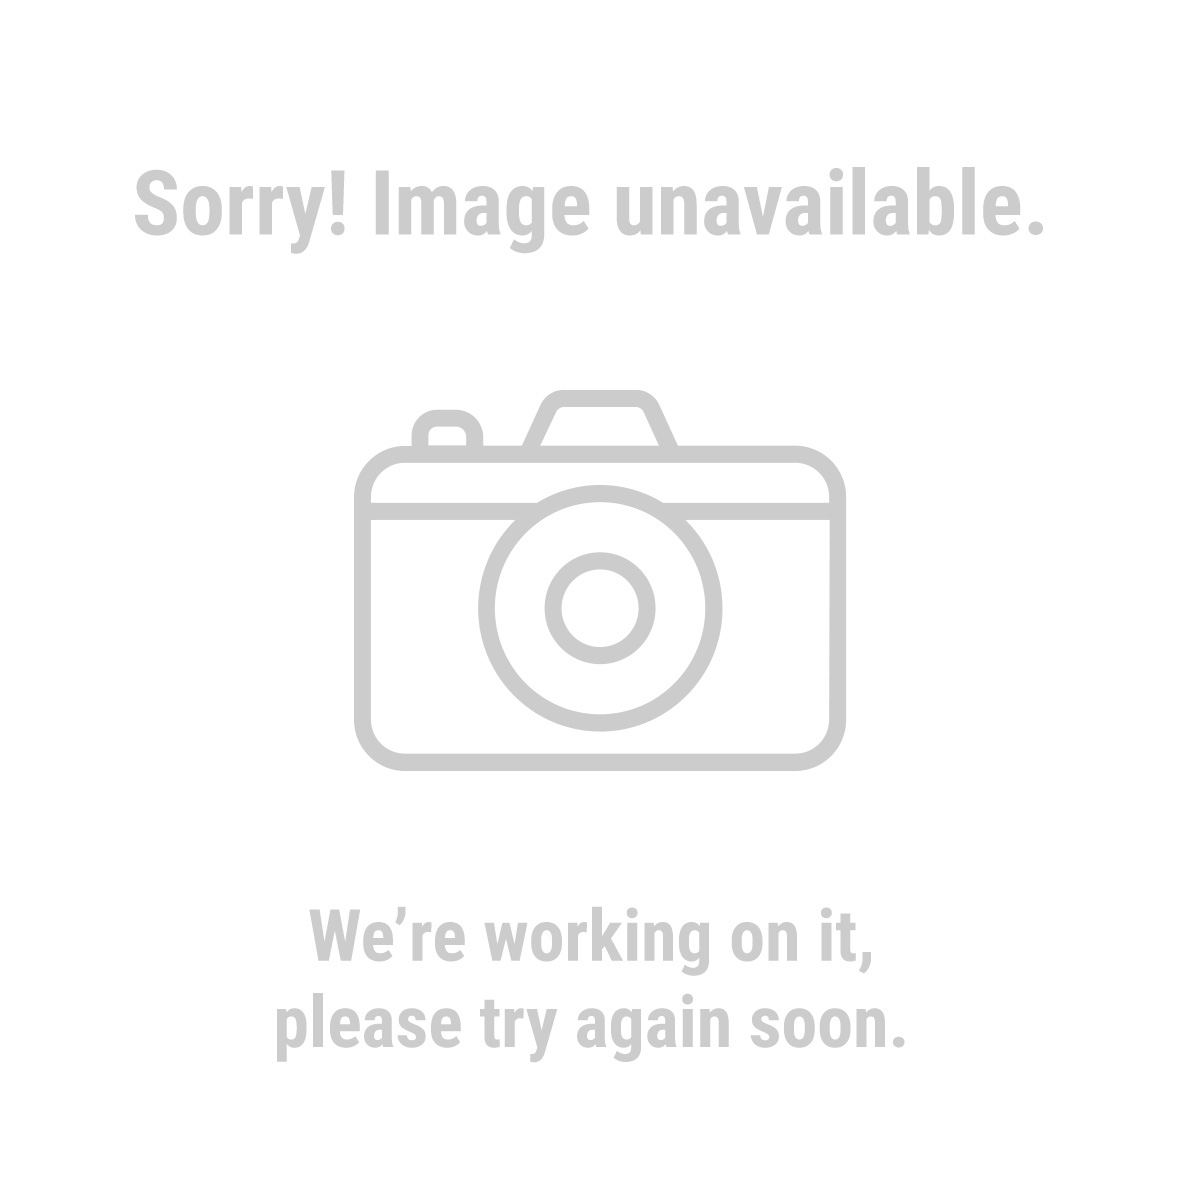 BADLAND WINCHES 68146 2000 lb. Electric ATV/UTV Winch with Automatic Load-Holding Brake